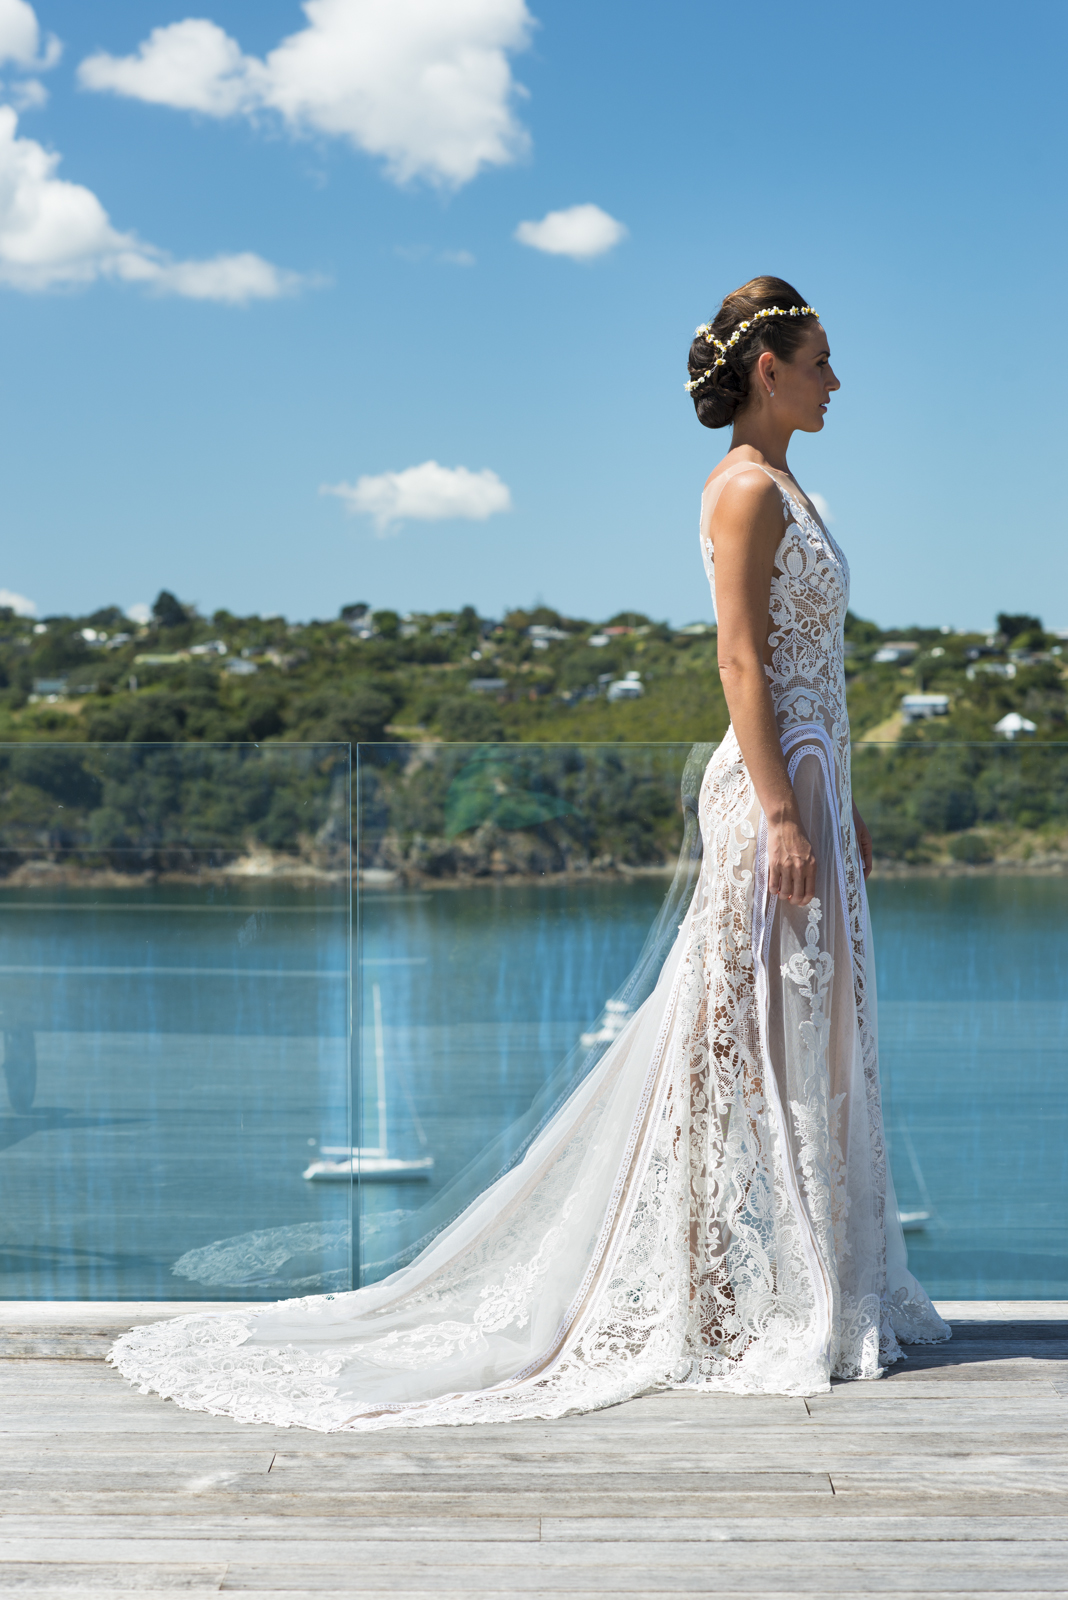 The dress was handmade in Australia by Janton Couture